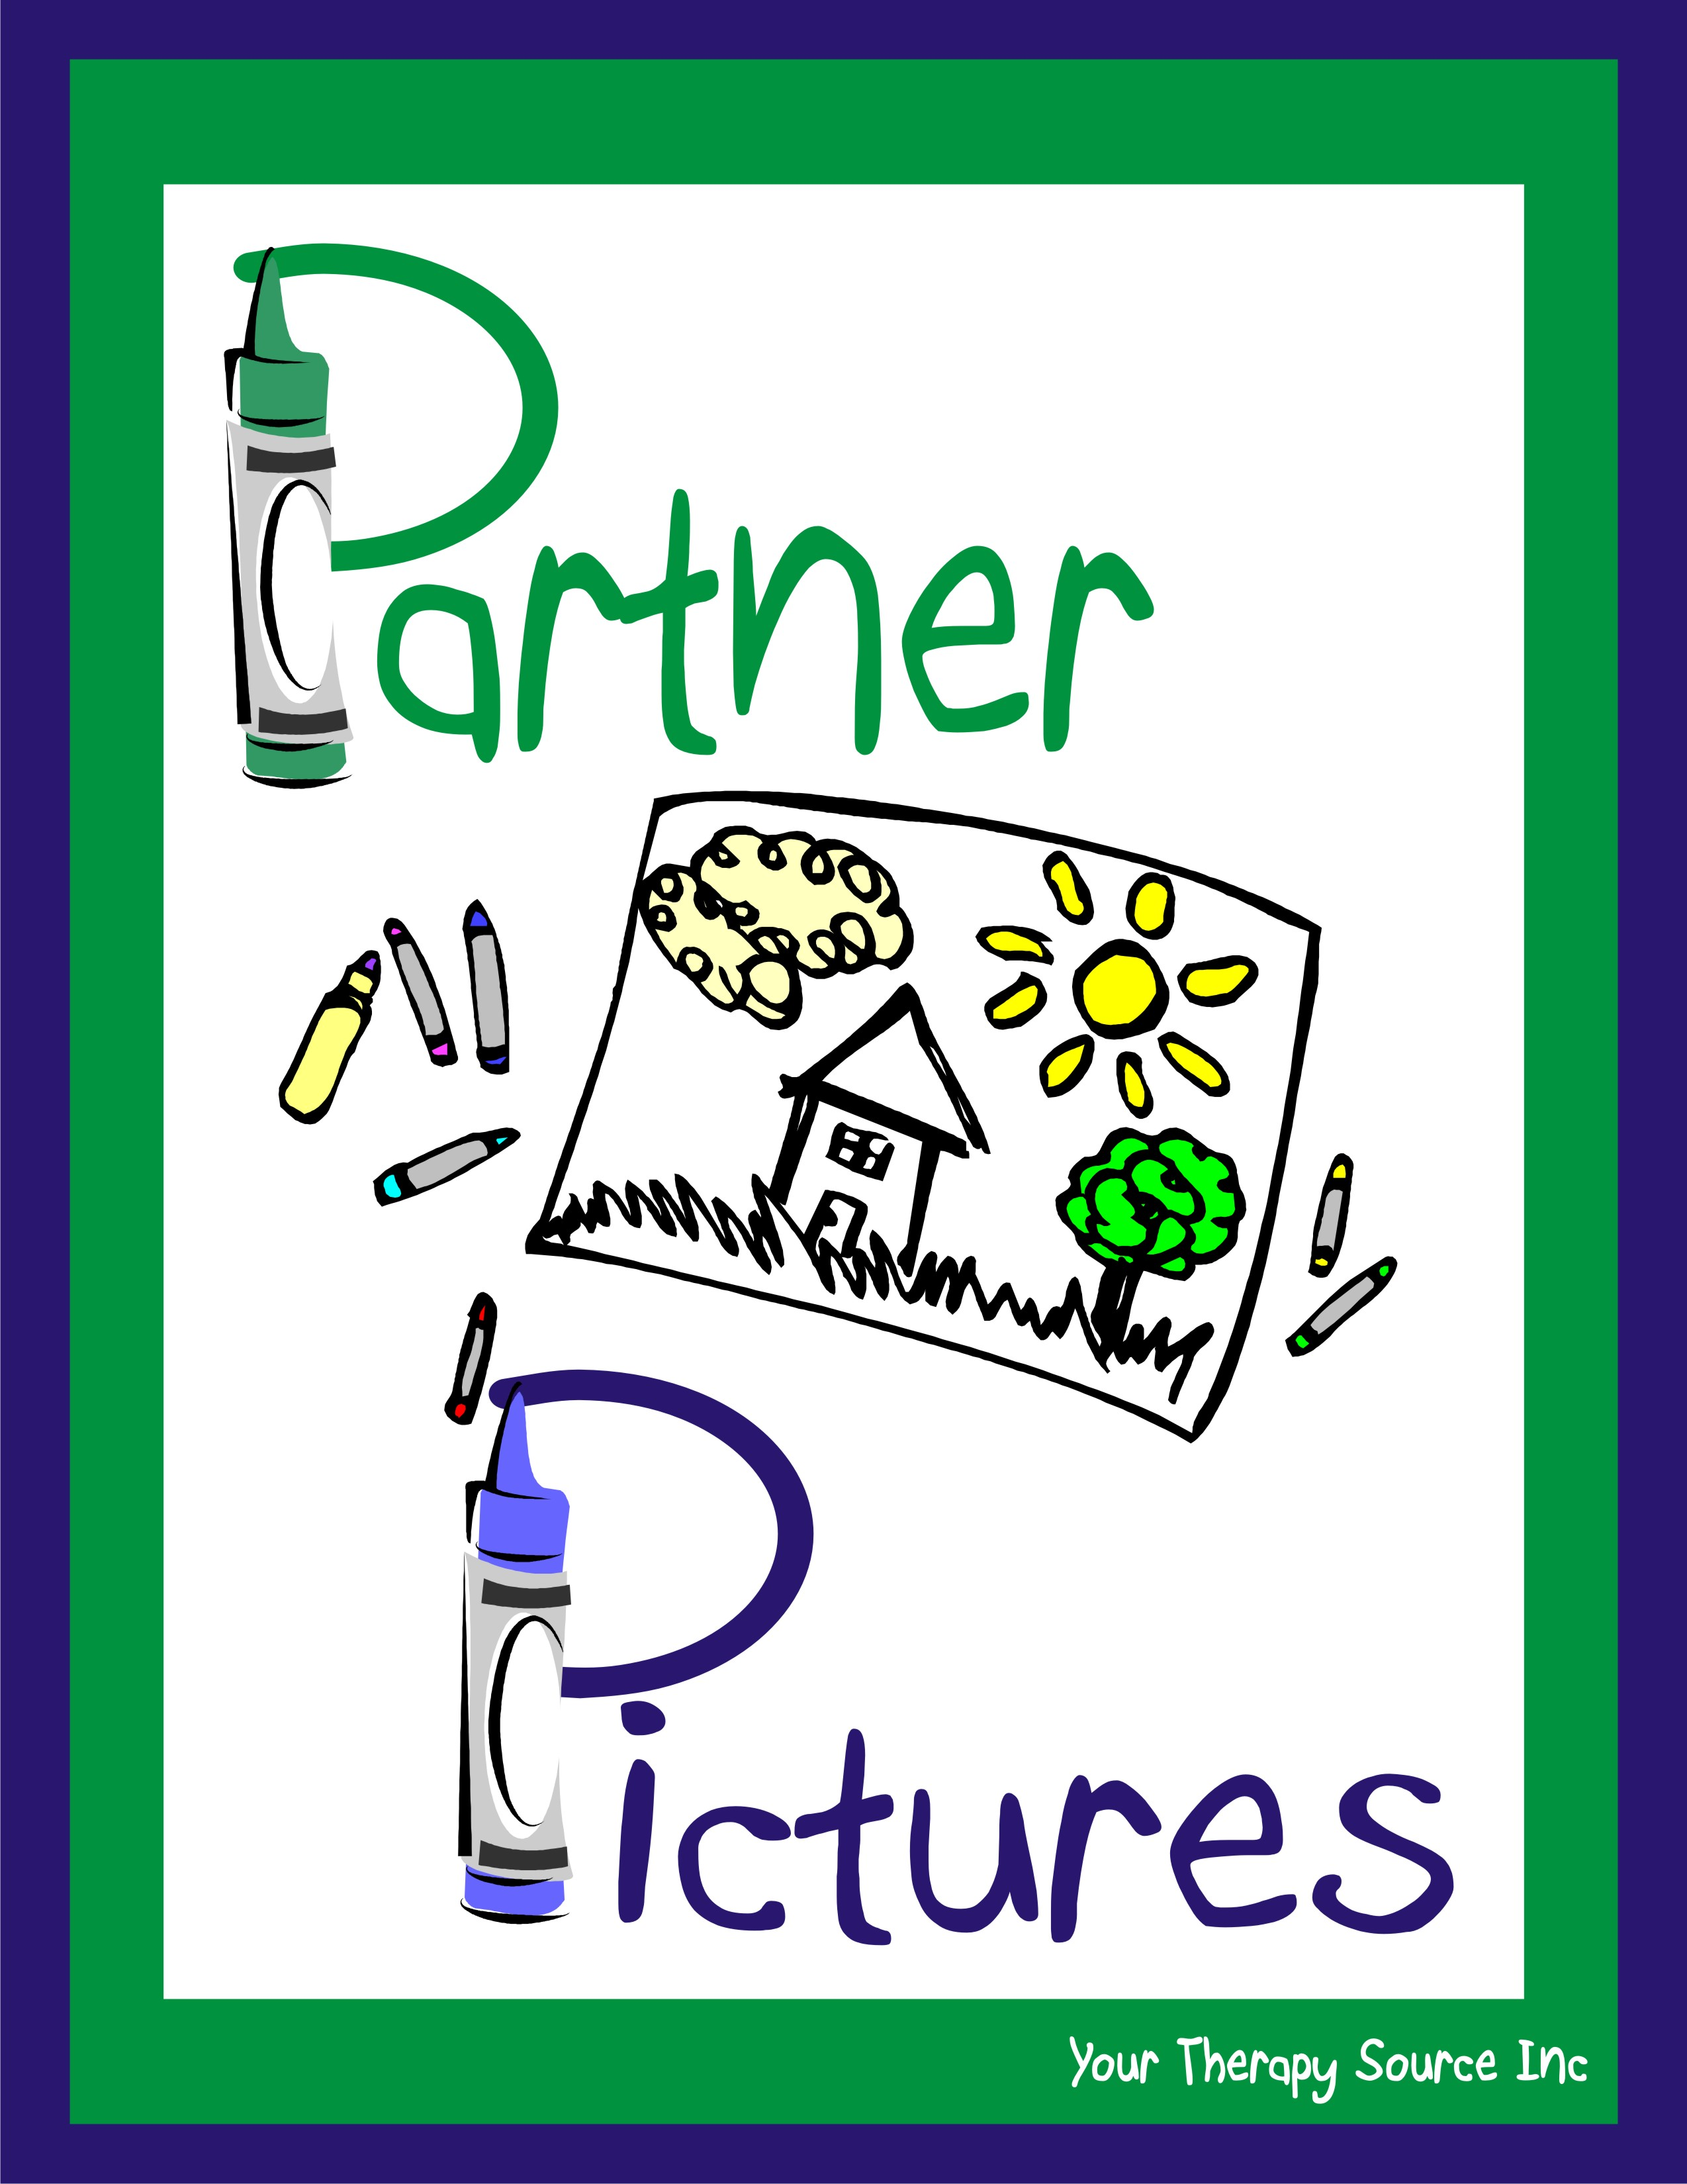 Partner Pictures